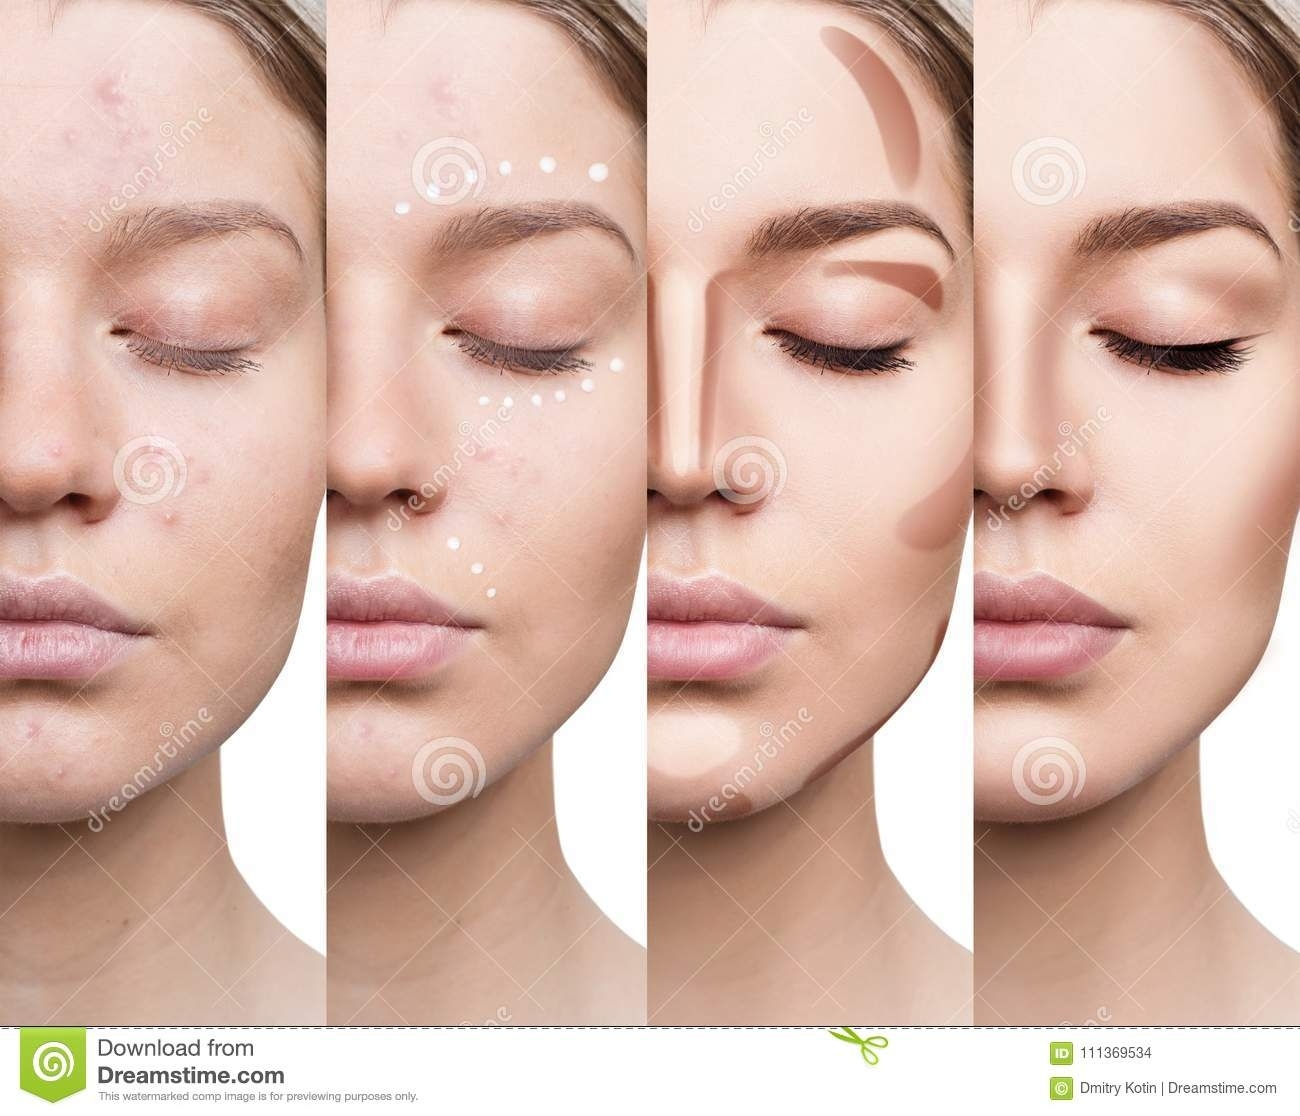 Woman Applying Makeup Step By Step. Stock Photo - Image Of within Applying Makeup Step By Step Pictures